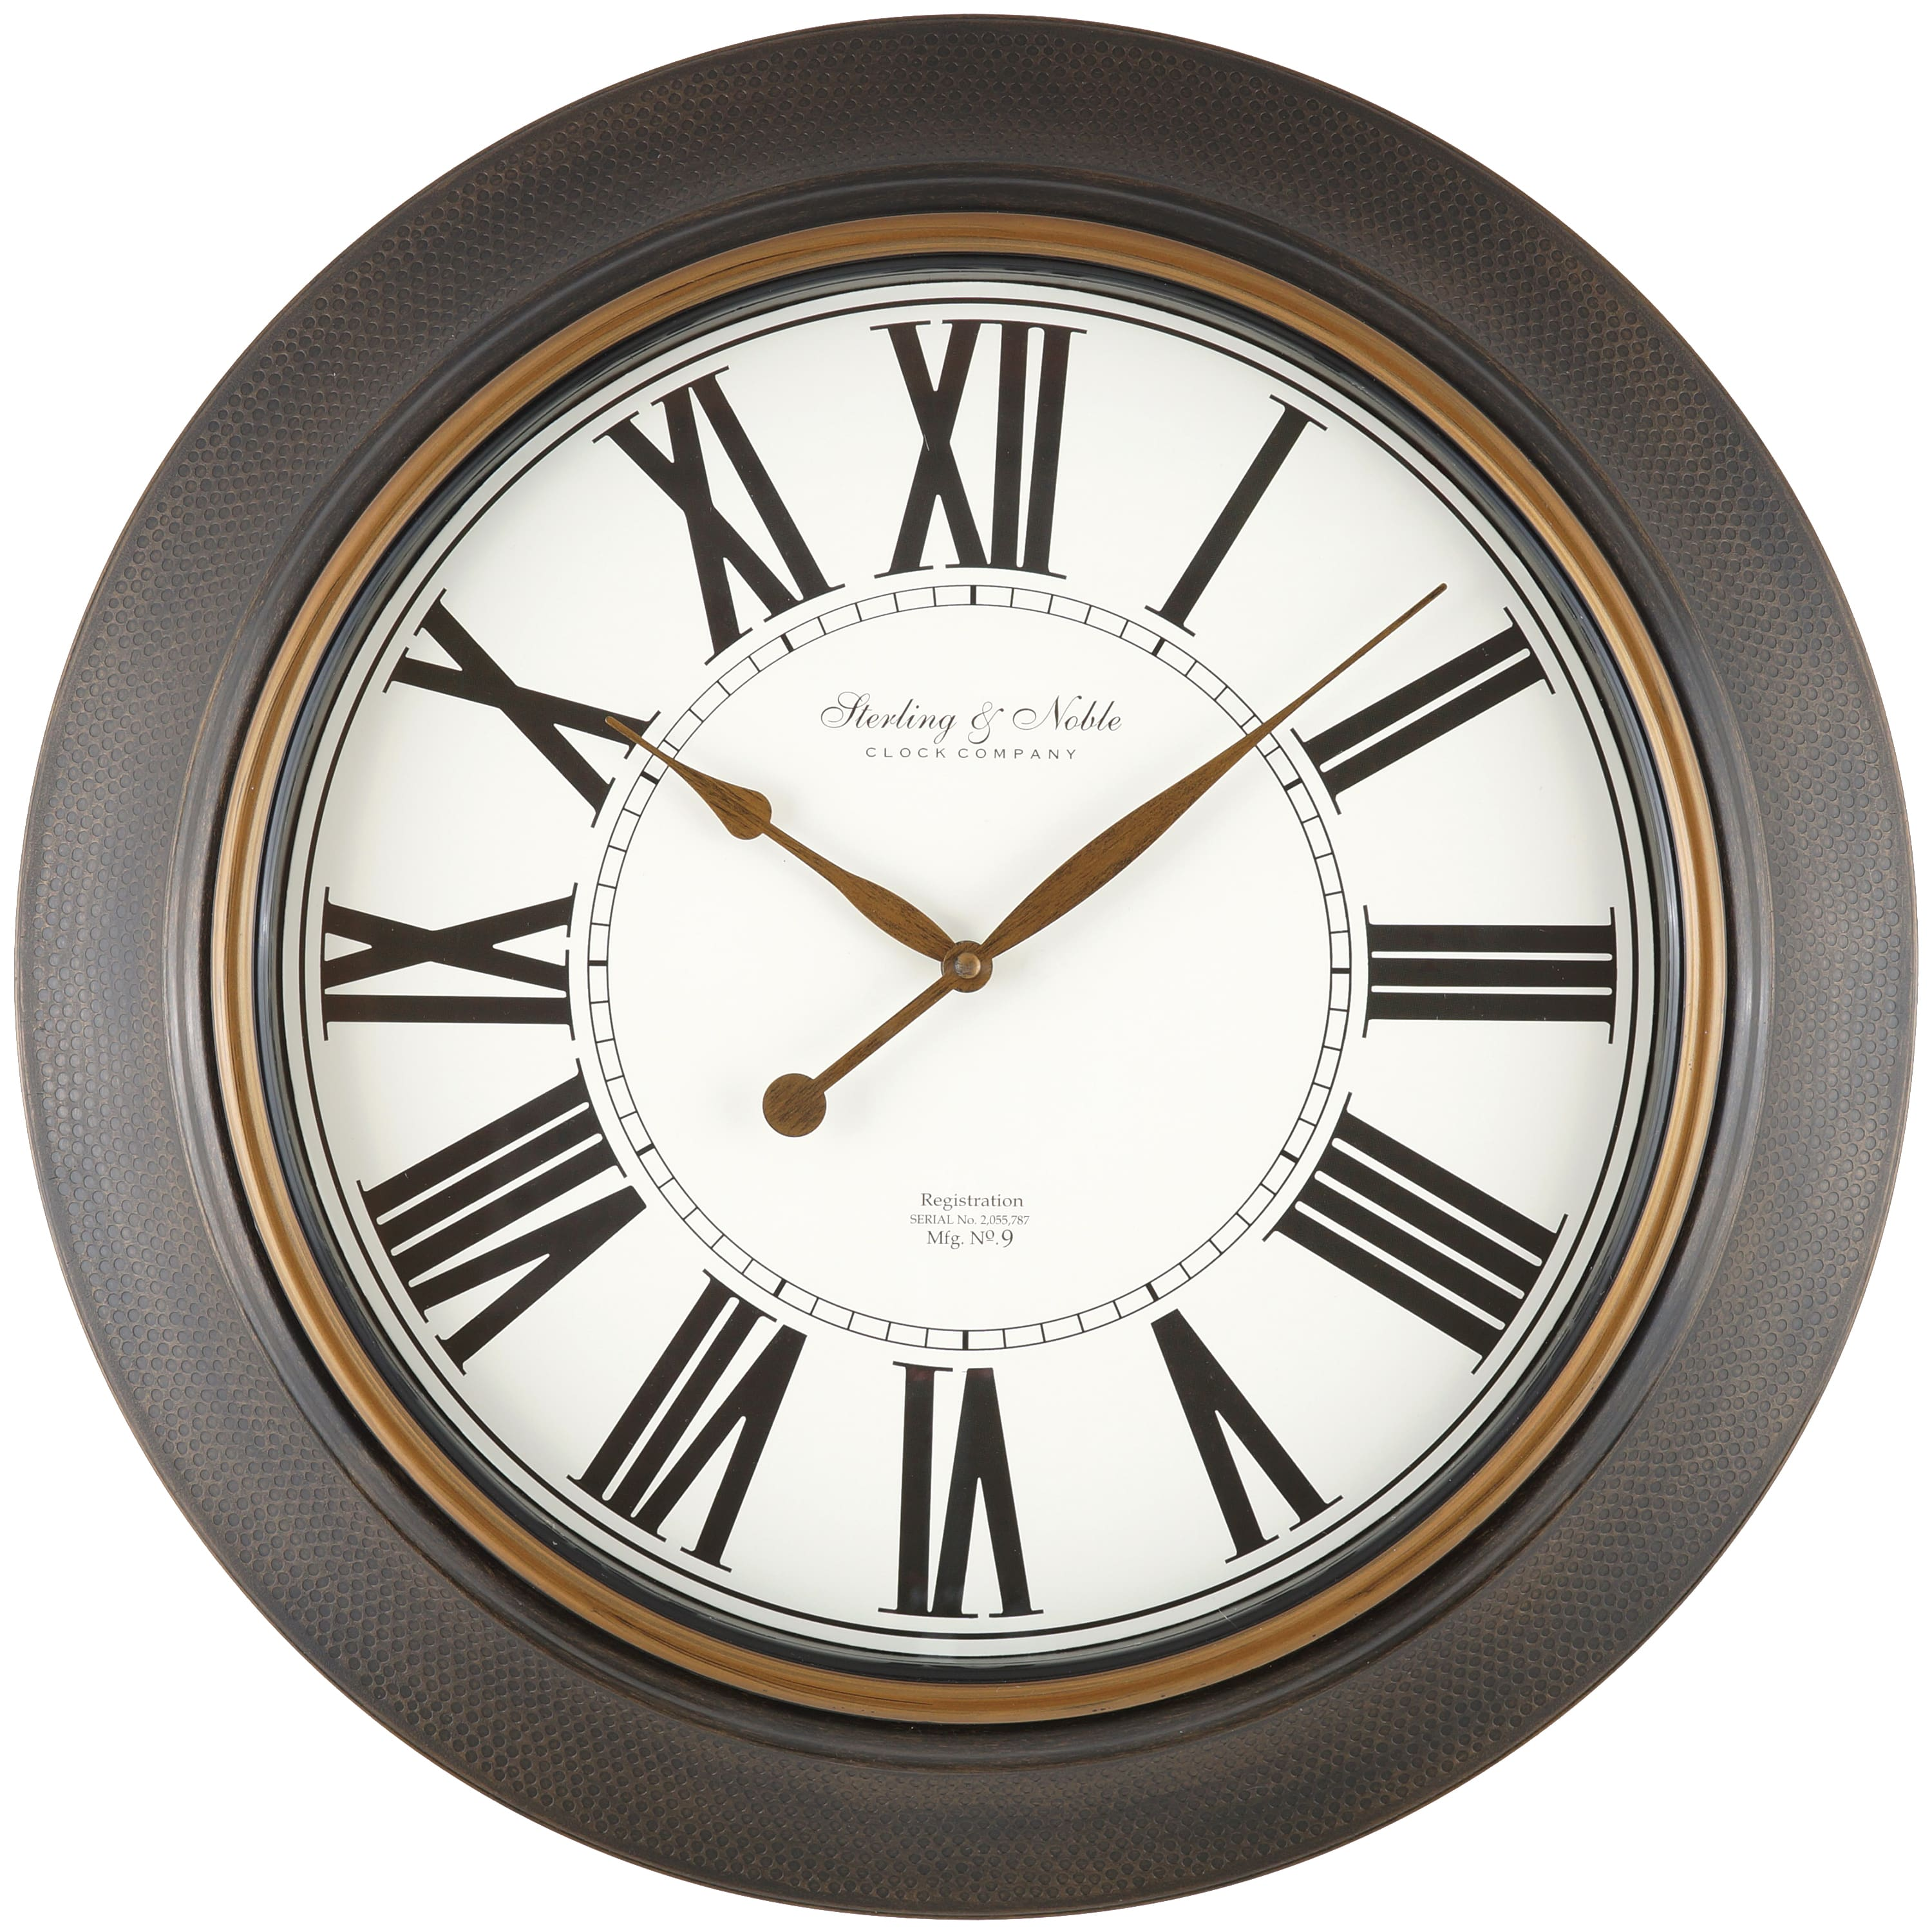 "Mainstays 20"" Bronze Roman Numeral Wall Clock, Bronze Finish YMMV *in-store* $5"